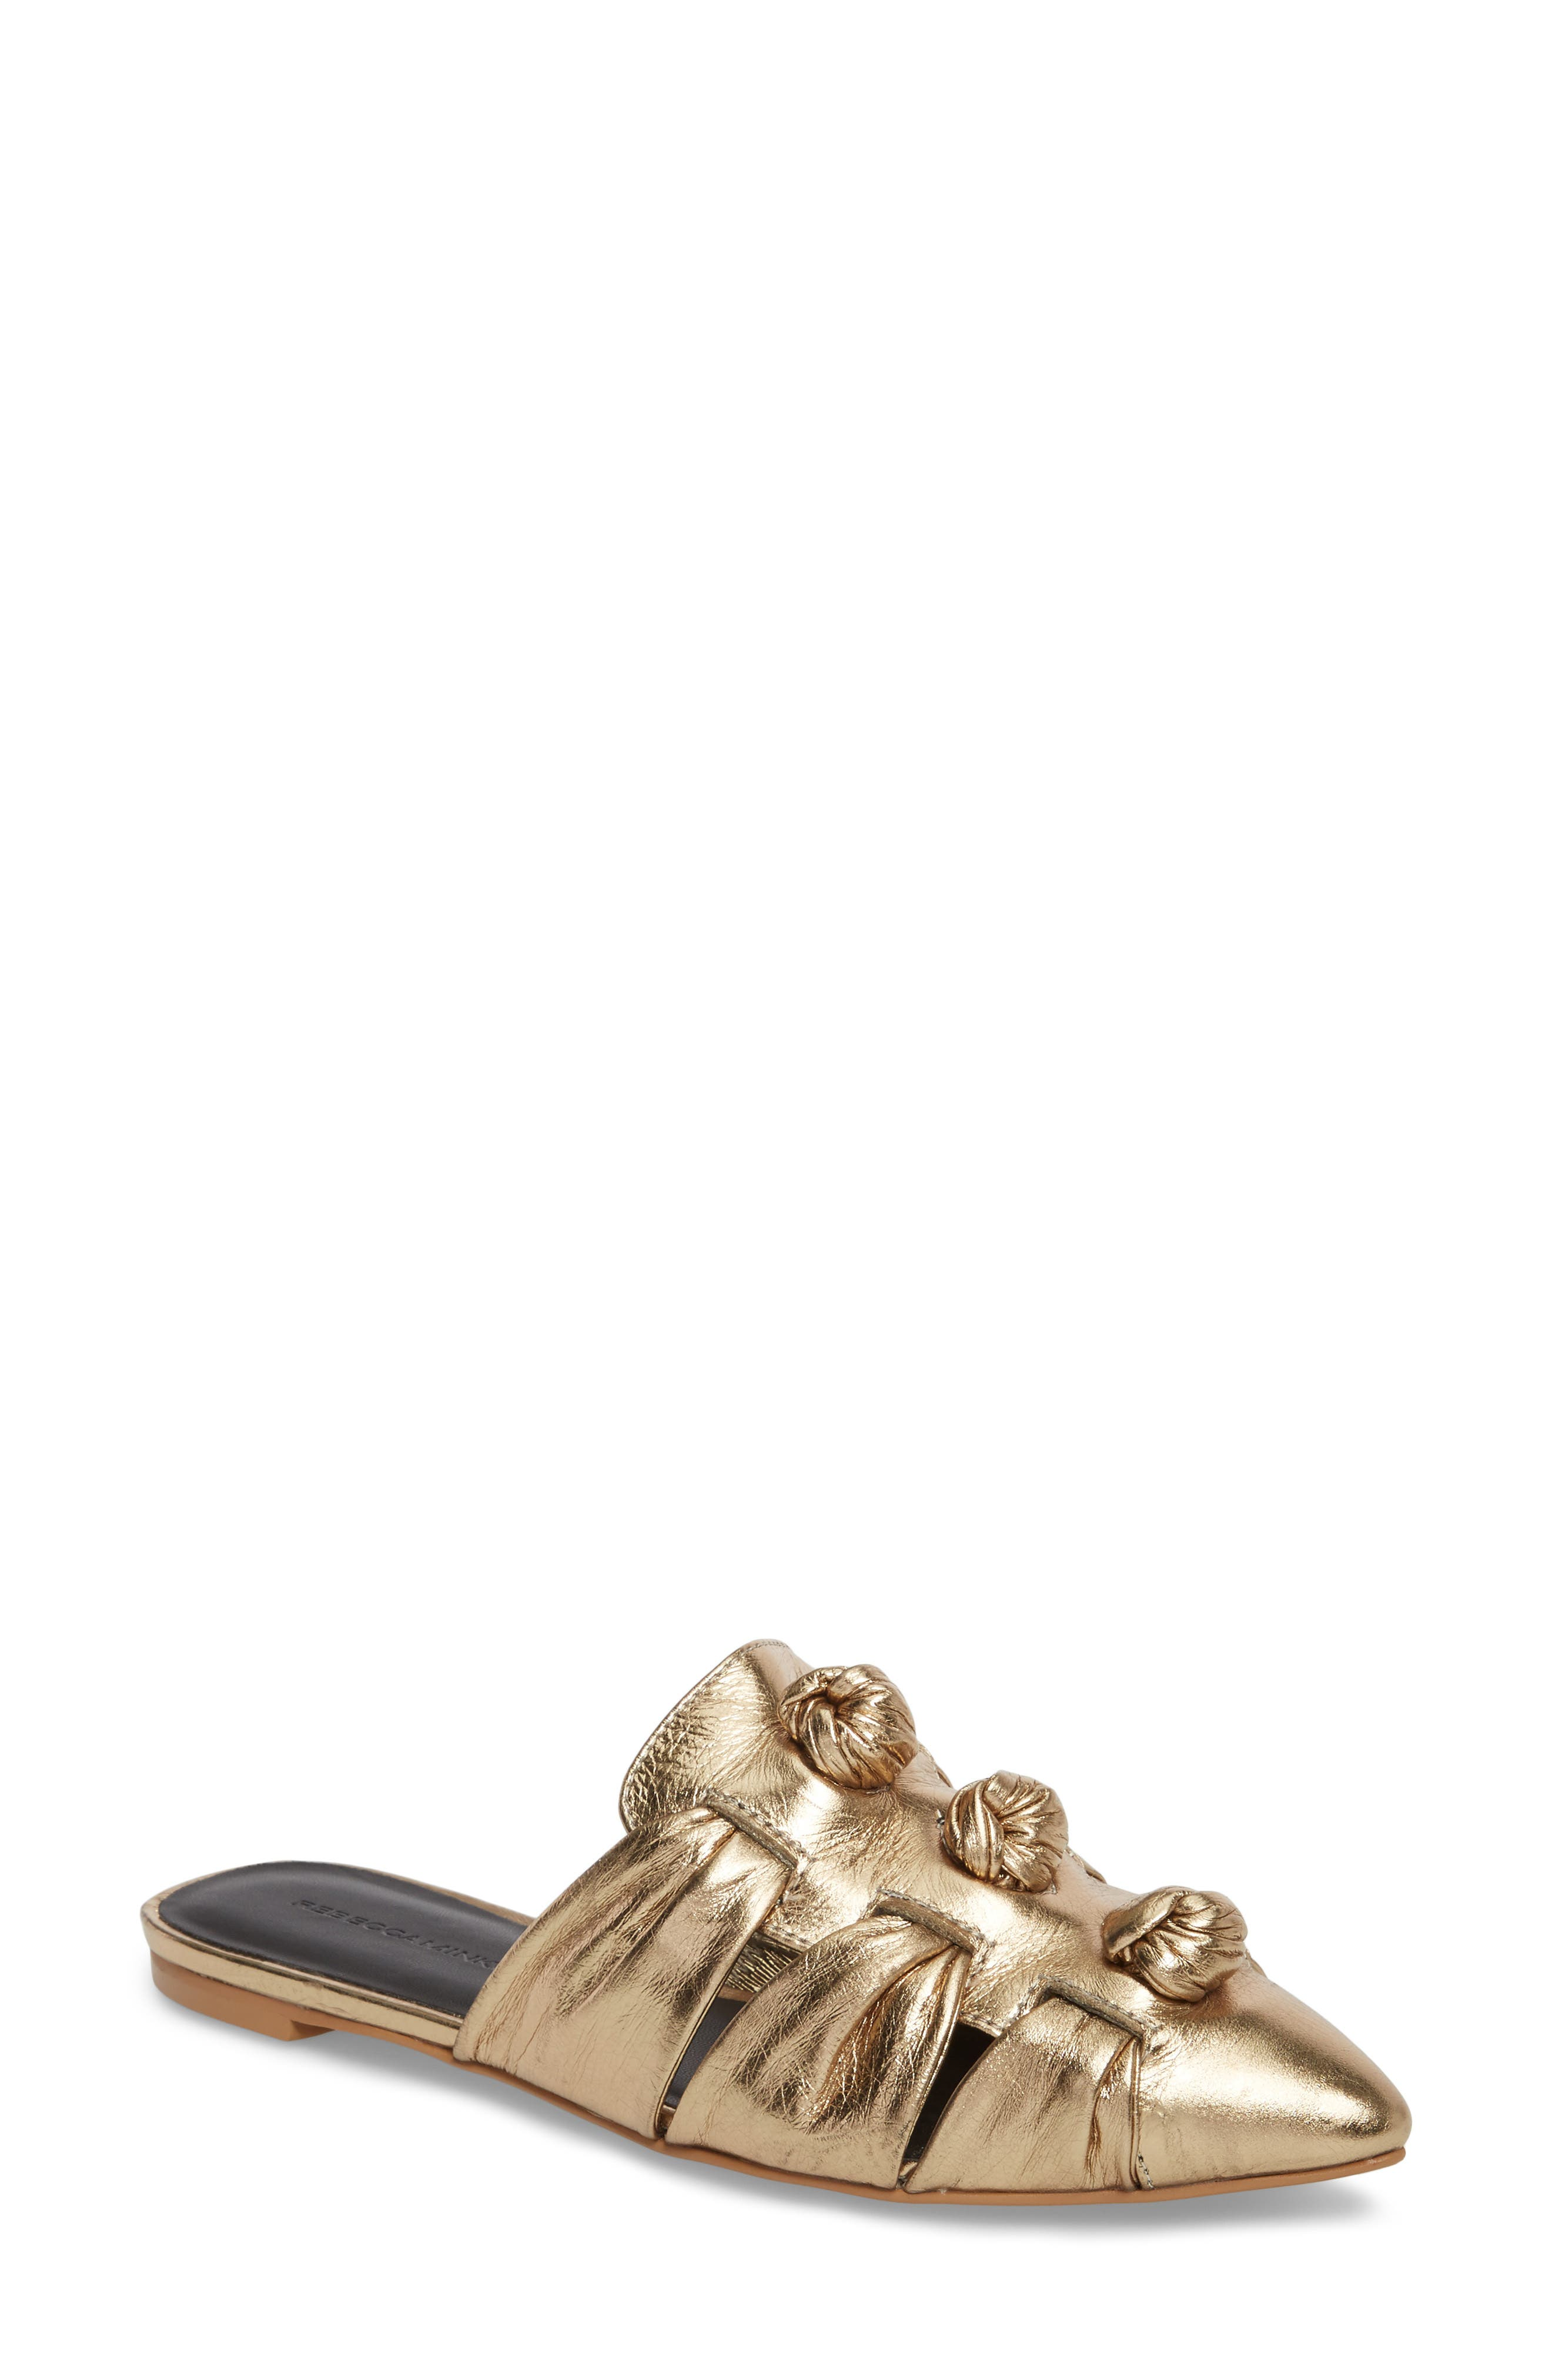 Alternate Image 1 Selected - Rebecca Minkoff Aden Flat (Women)